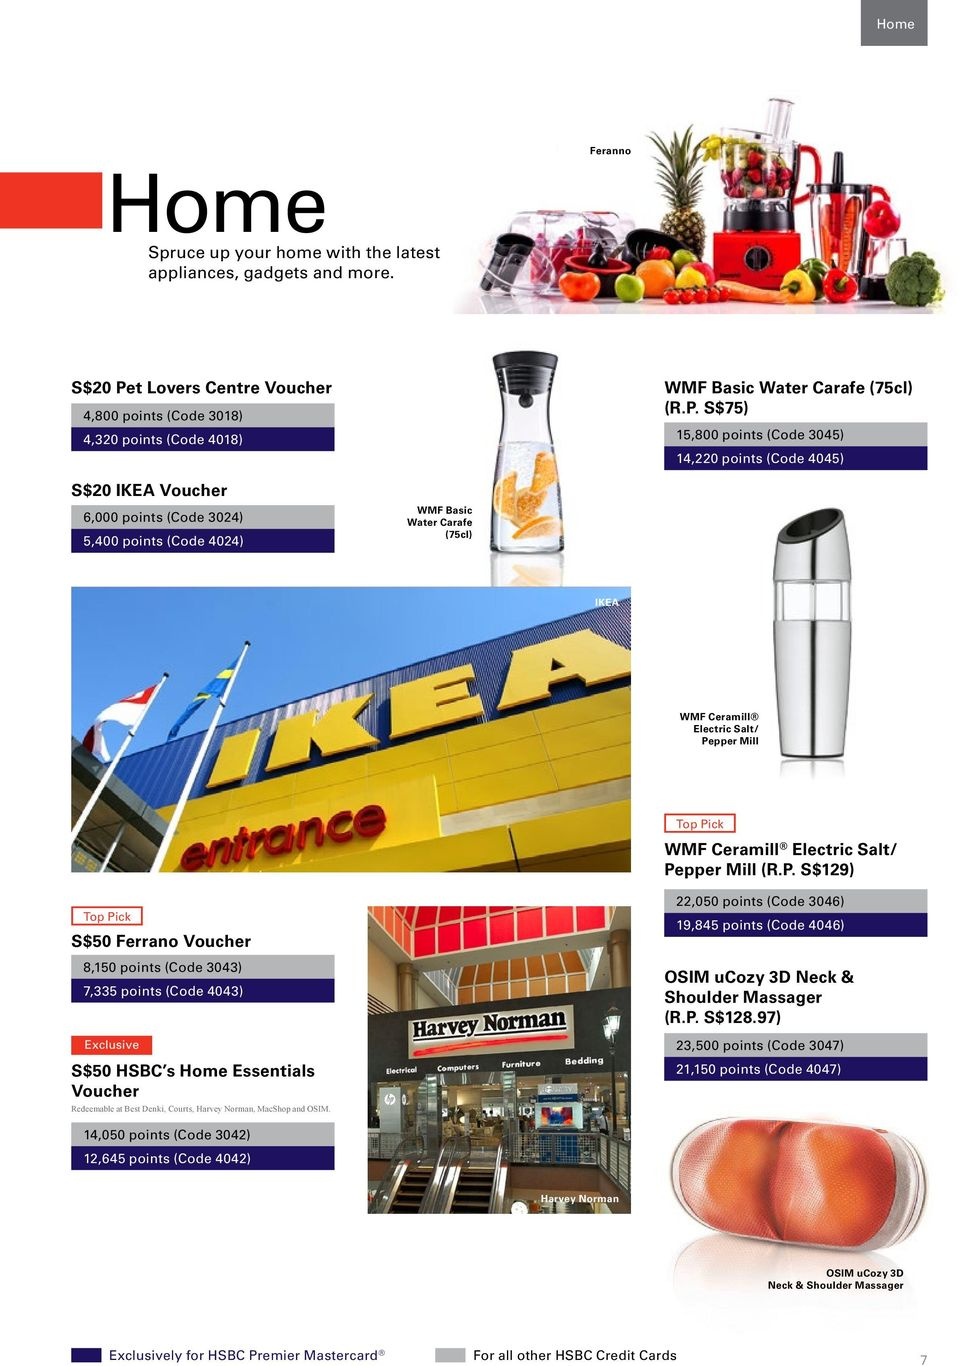 Treat Yourself To Something Special From Hsbc S Rewards Programme Pdf Voucher Ikea Rp 300000 S75 15800 Points Code 3045 14220 4045